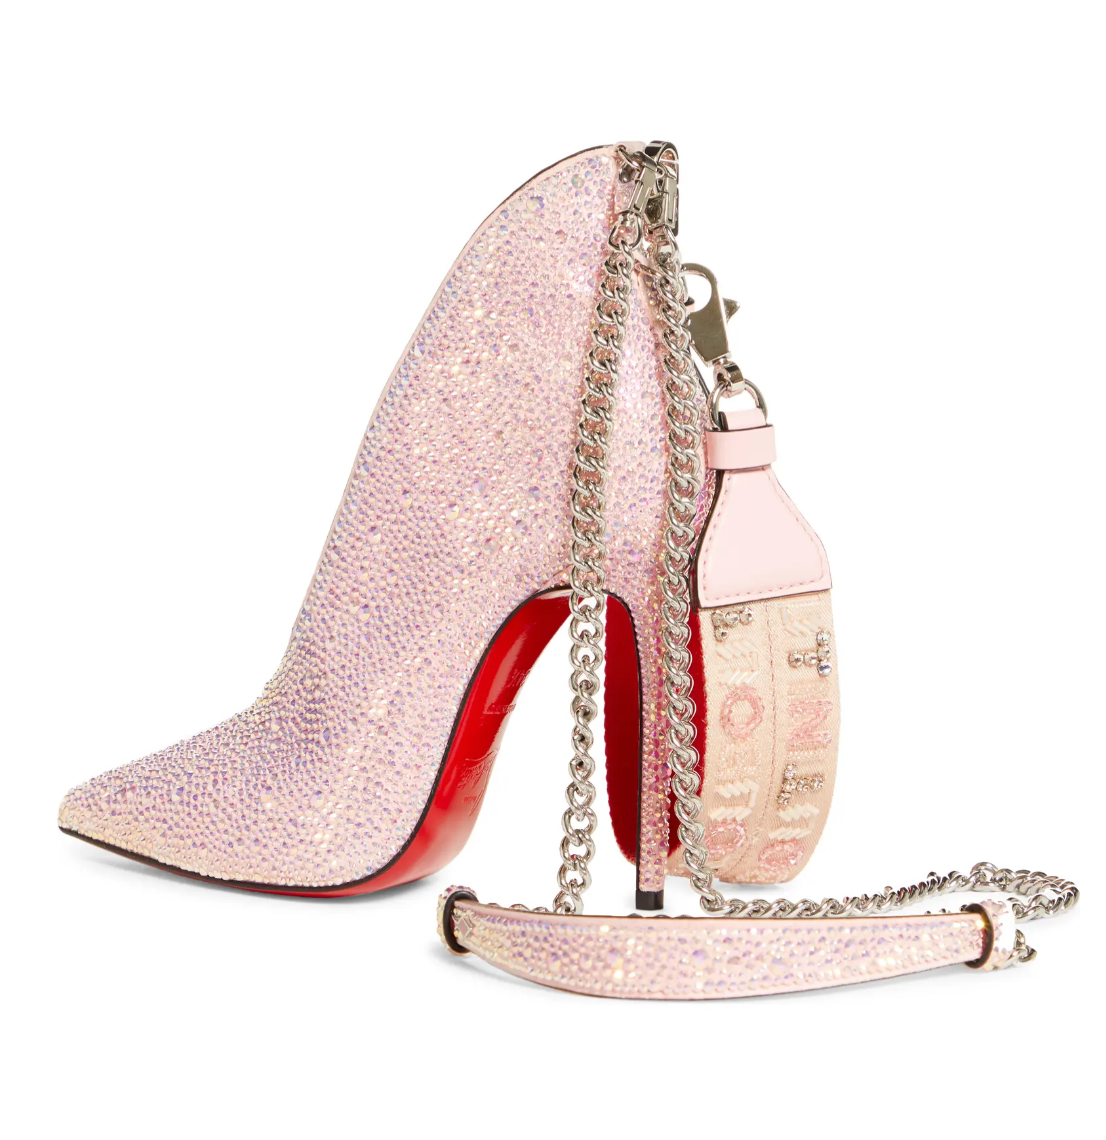 Christian Louboutin A.B. Charm Crystal Logo Shoulder Bag